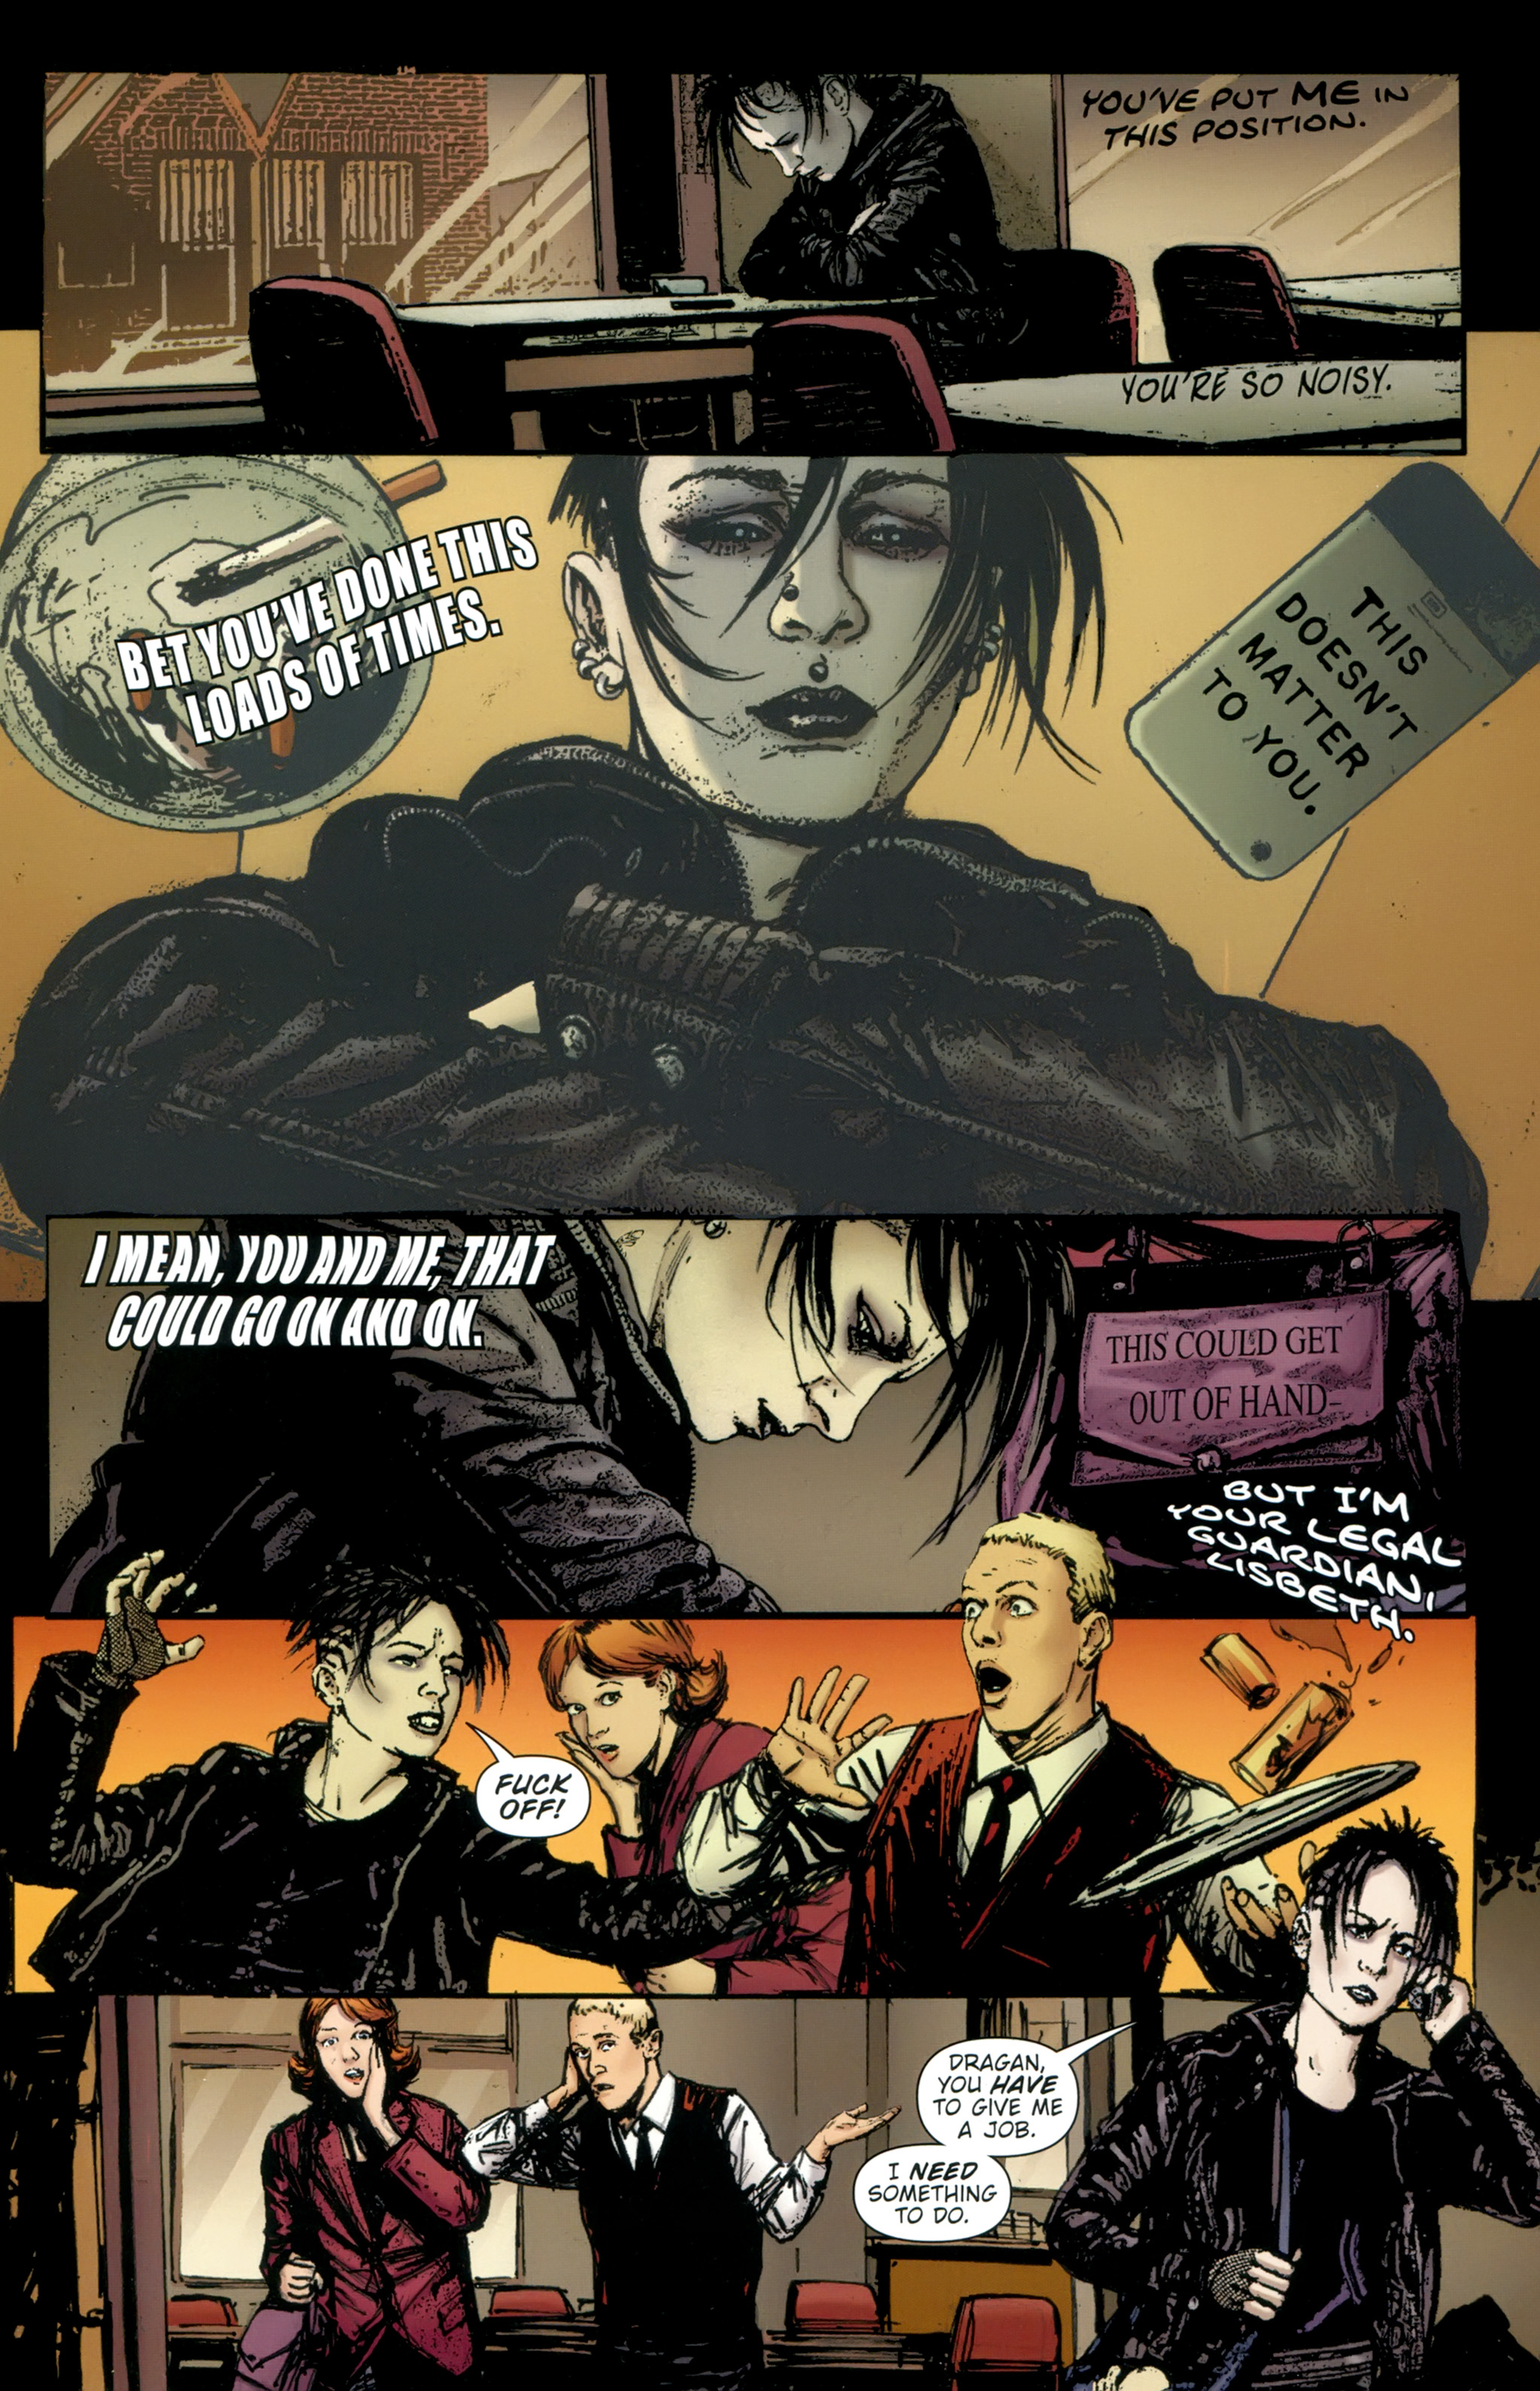 Read online The Girl With the Dragon Tattoo comic -  Issue # TPB 2 - 24